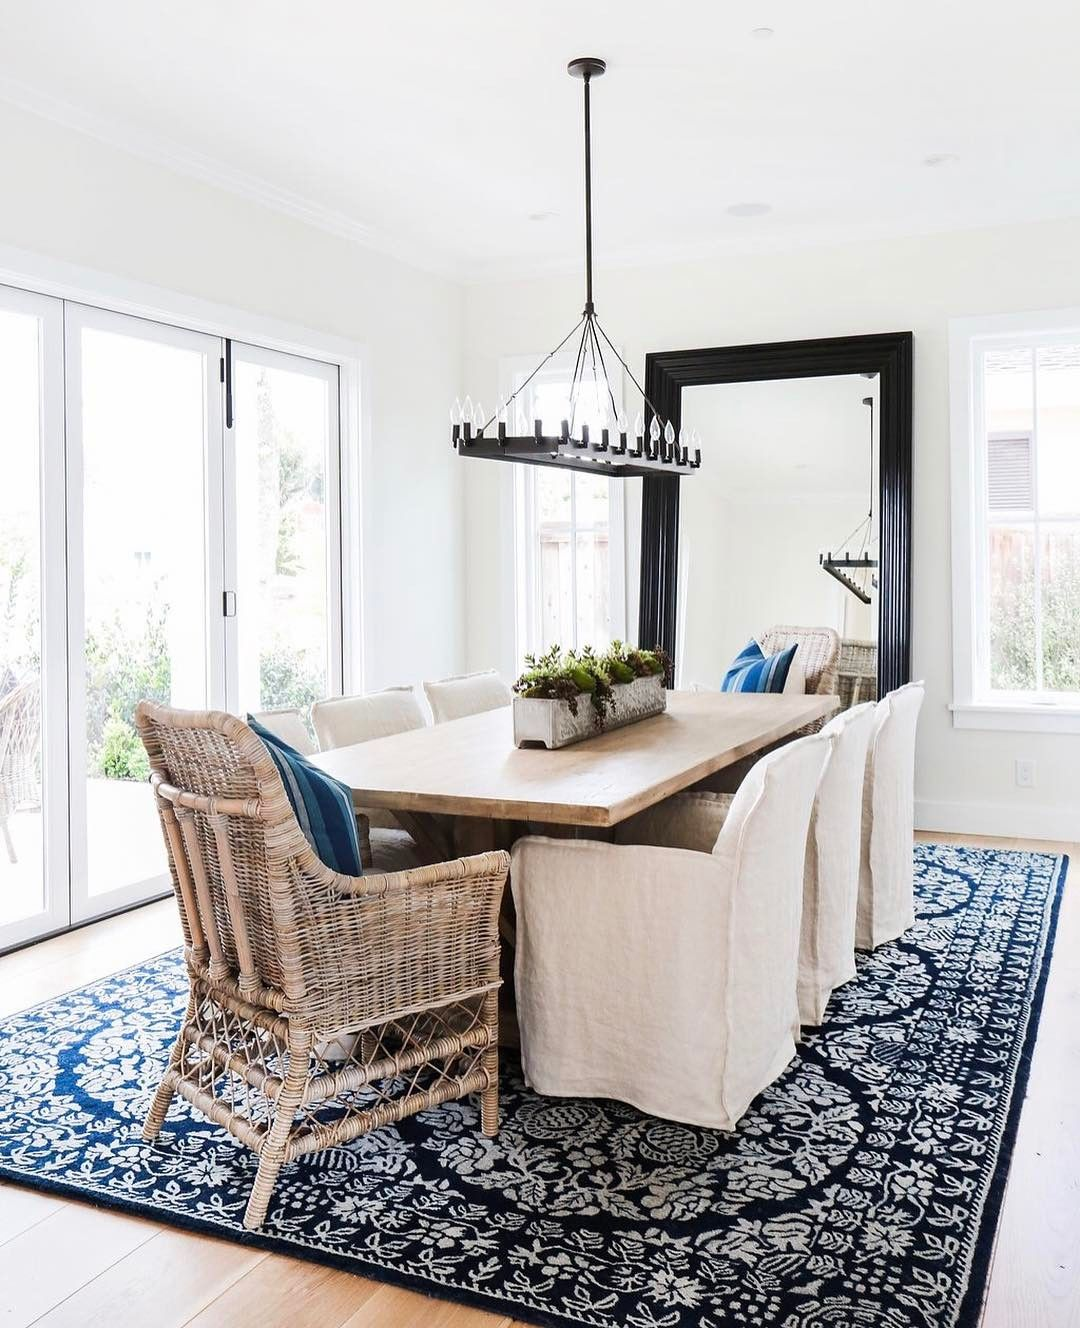 We Have This Airy Dining Room By Blackbanddesign Has That Modern Farmhouse Look All